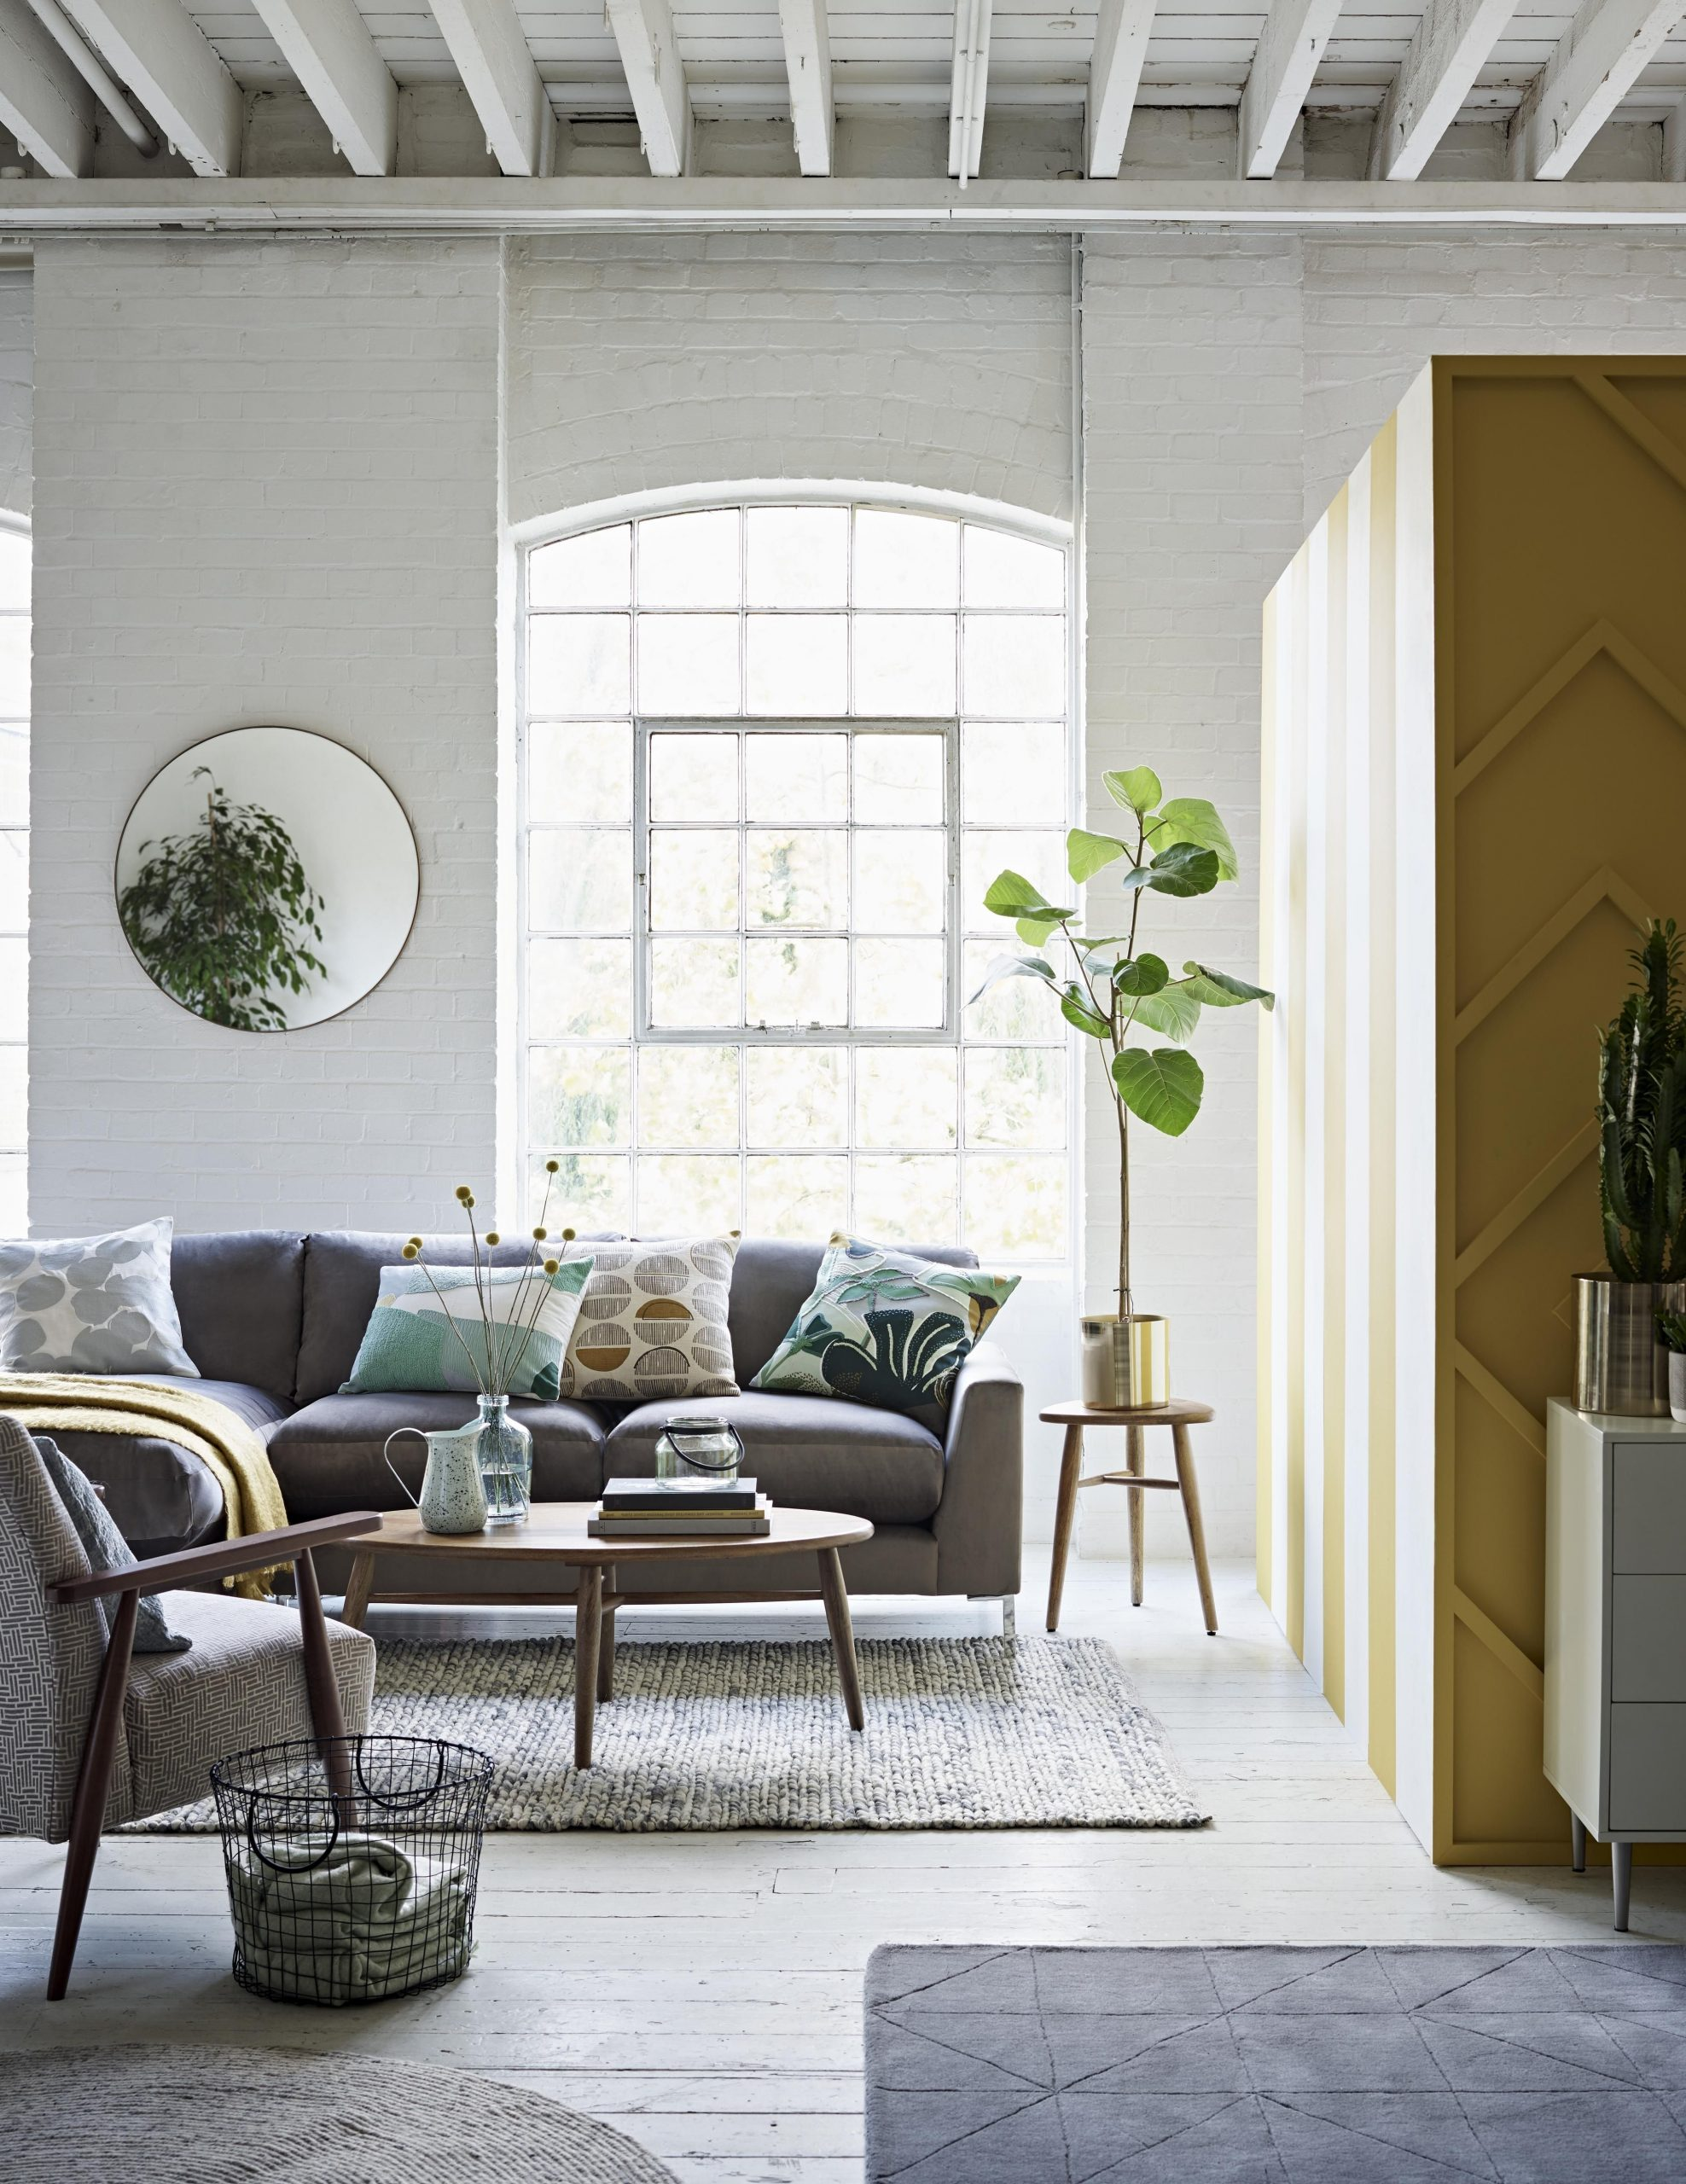 Coffee Table Ideas How To Style Your Coffee Table Like A Pro 20+ Marks And Spencer Living Room Inspirations